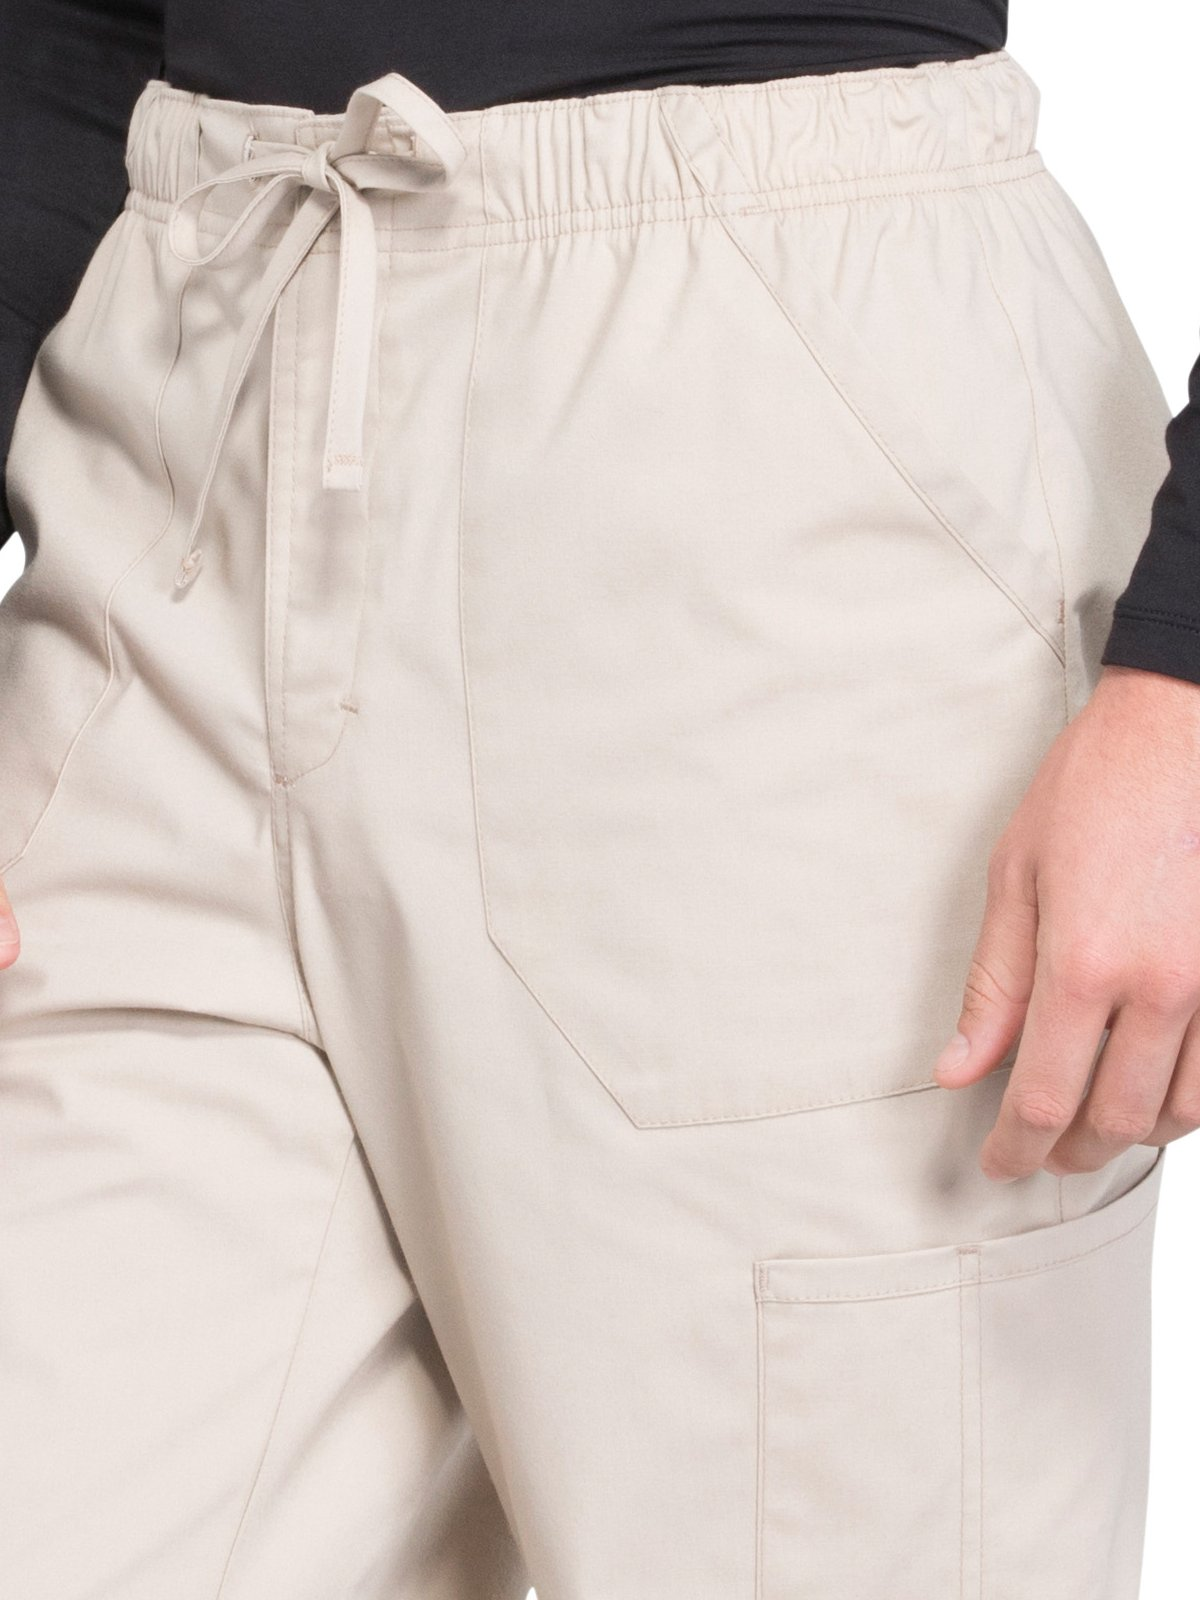 Cherokee WW Professionals WW190 Men's Tapered Leg Drawstring Cargo Pant Khaki XL Short by Cherokee (Image #3)